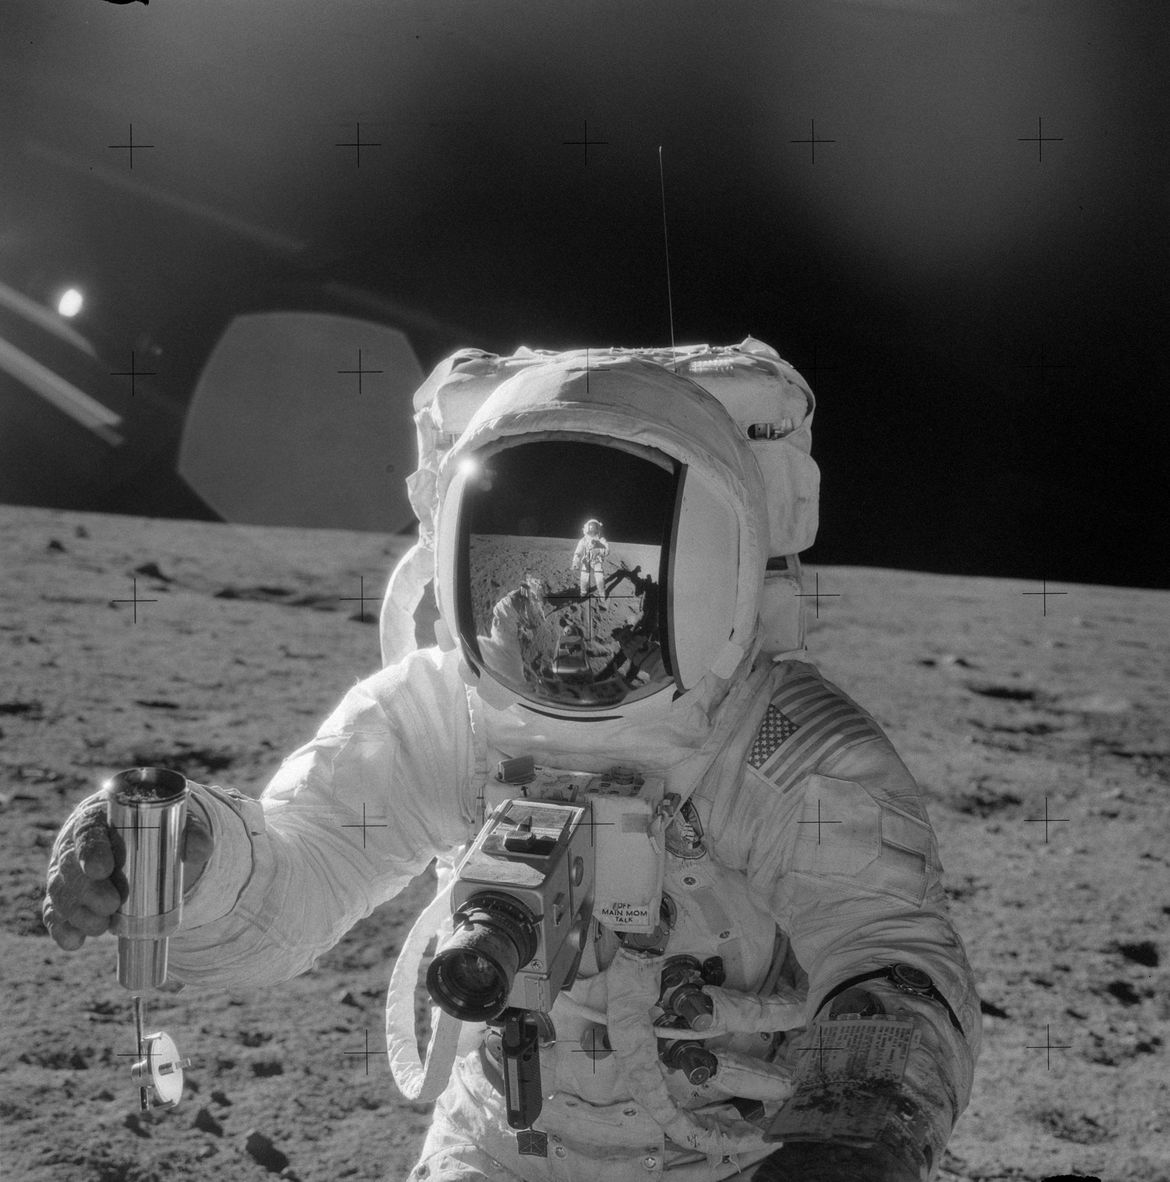 Apollo 12 astronaut Al Bean standing on the Moon. Credit: NASA